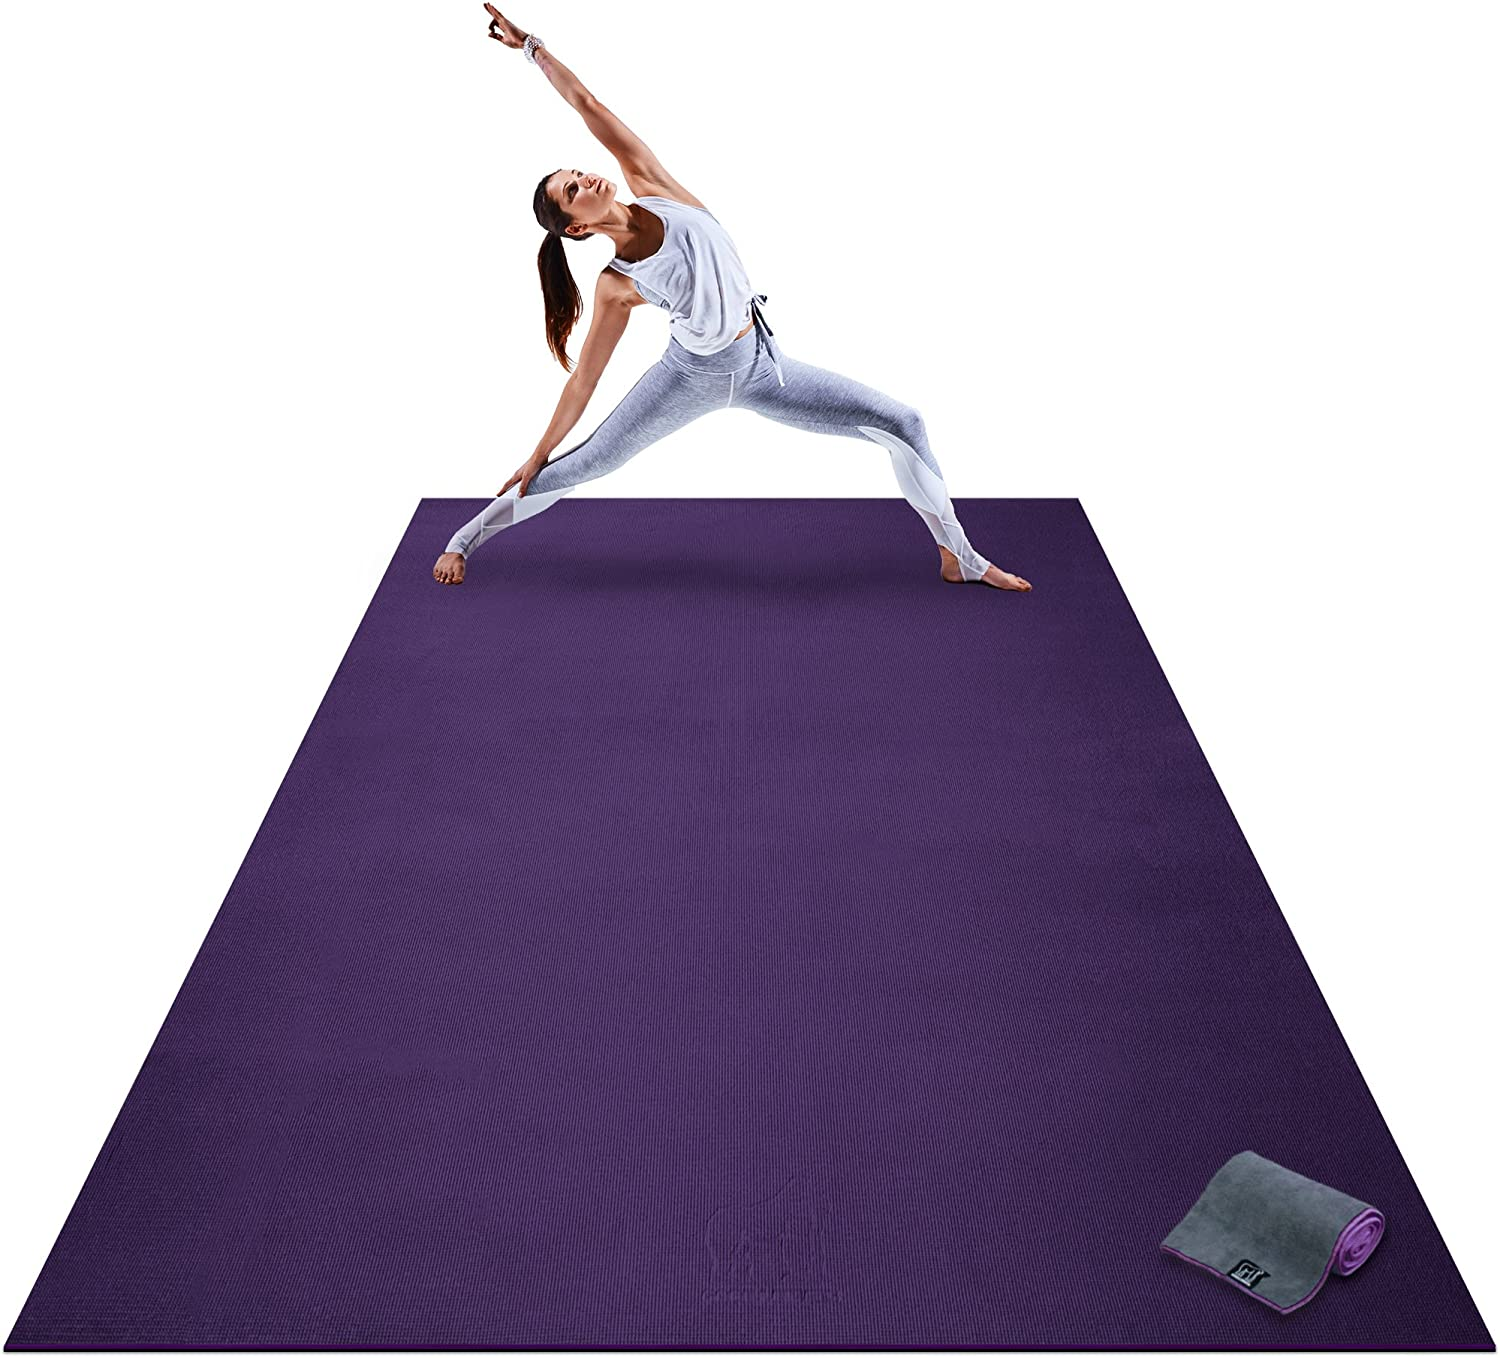 Premium Extra Large Yoga Mat - 9 x 6 x 8mm Extra Thick & Comfortable, Non-Toxic, Non-Slip, Barefoot Exercise Mat - Yoga, Stretching, Cardio Workout ...